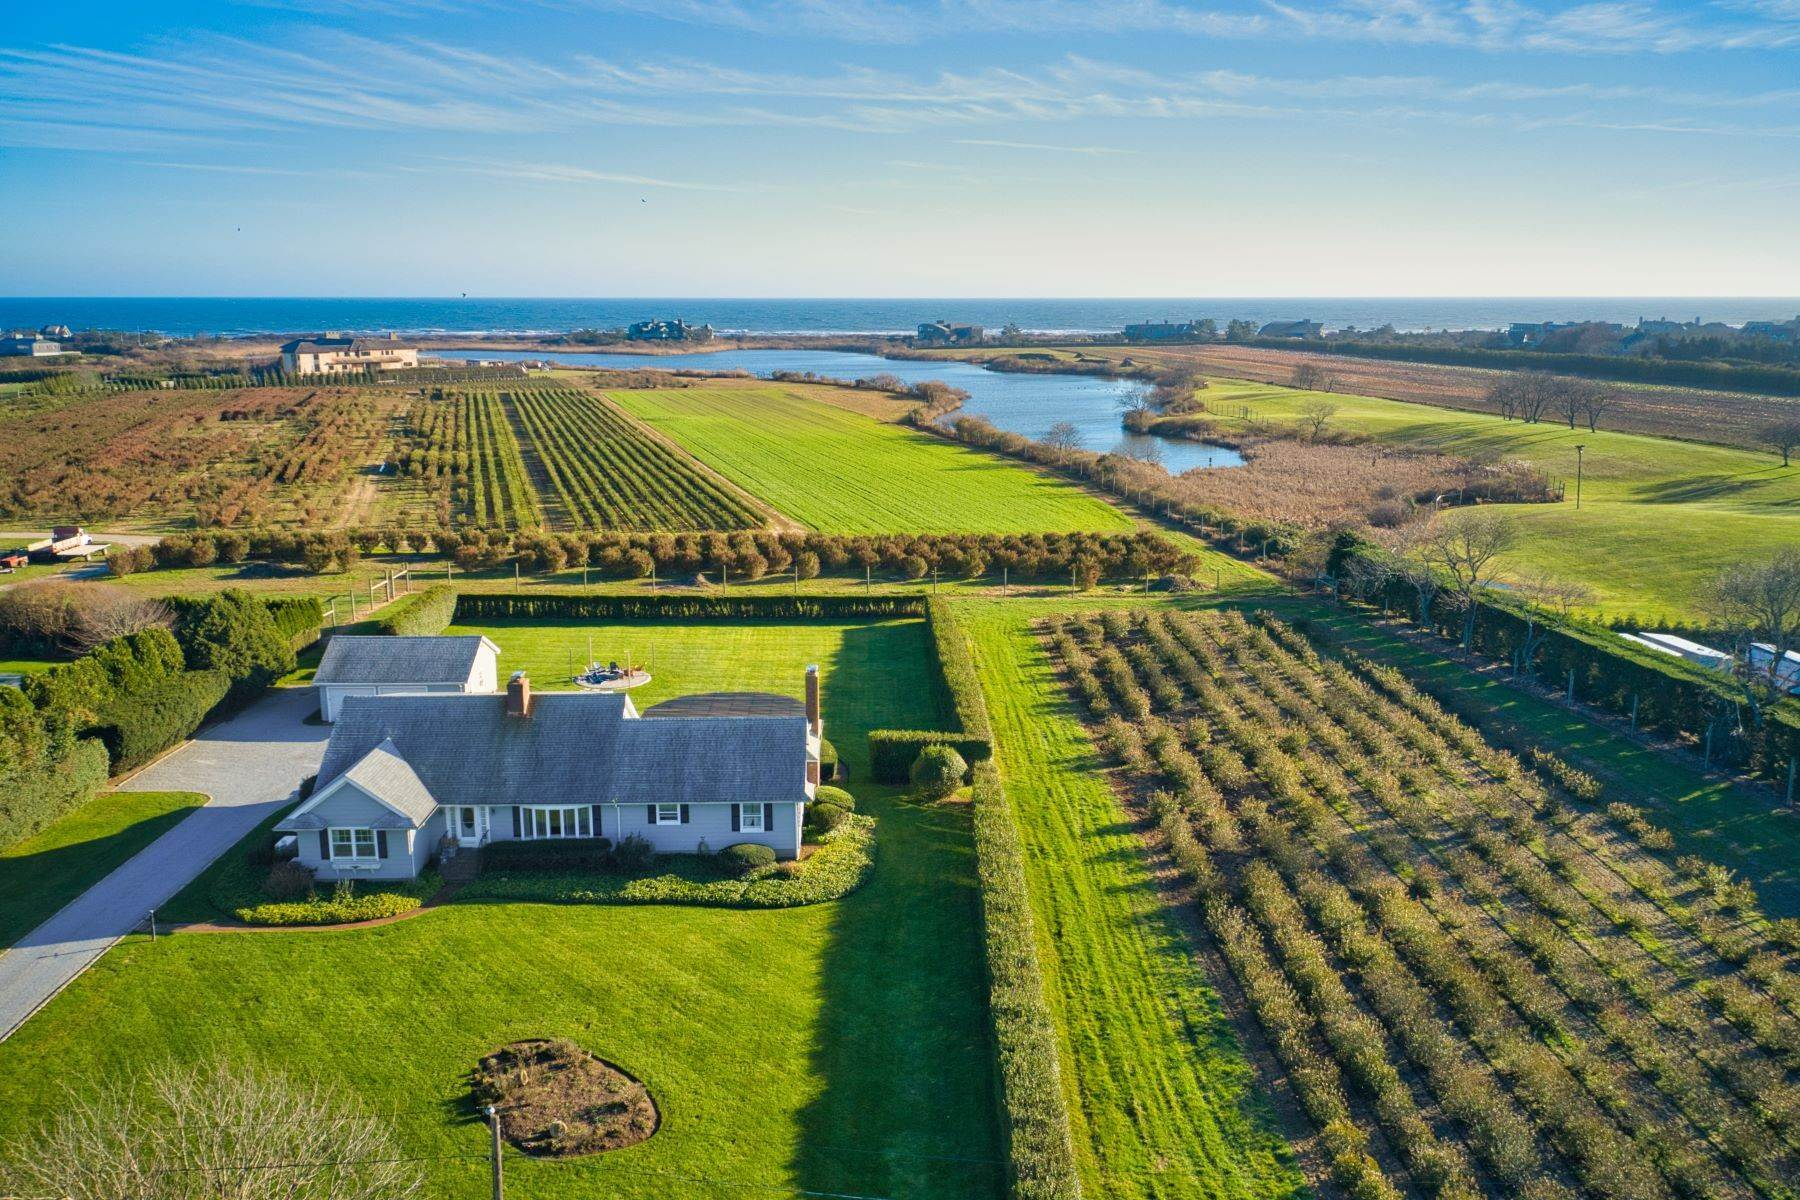 Terreno per Vendita alle ore Ocean, Pond, and Farm Views 508 And 522 Wickapogue Road, Southampton Village, Southampton, New York, 11968 Stati Uniti